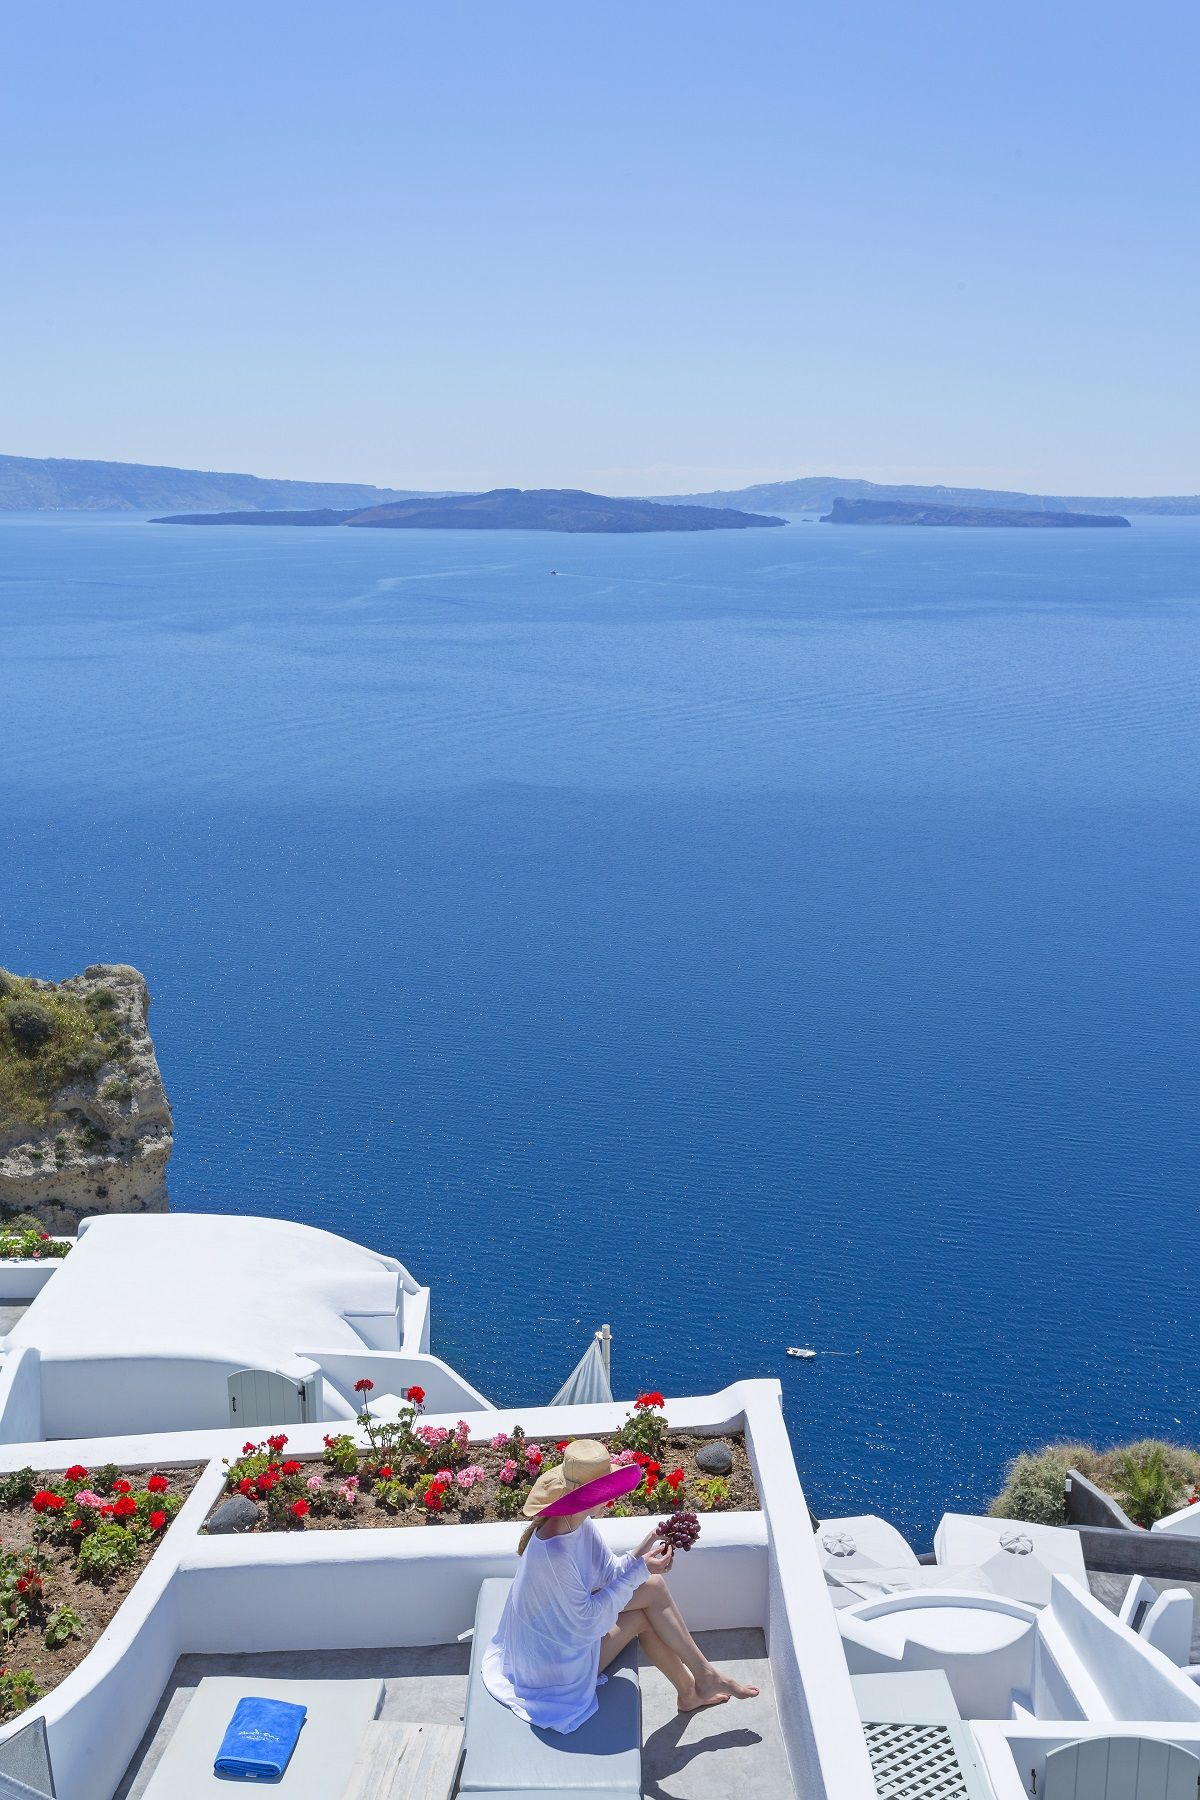 1000 images about andronis boutique hotel santorini on pinterest boutique hotels oia santorini and santorini andronis boutique hotel